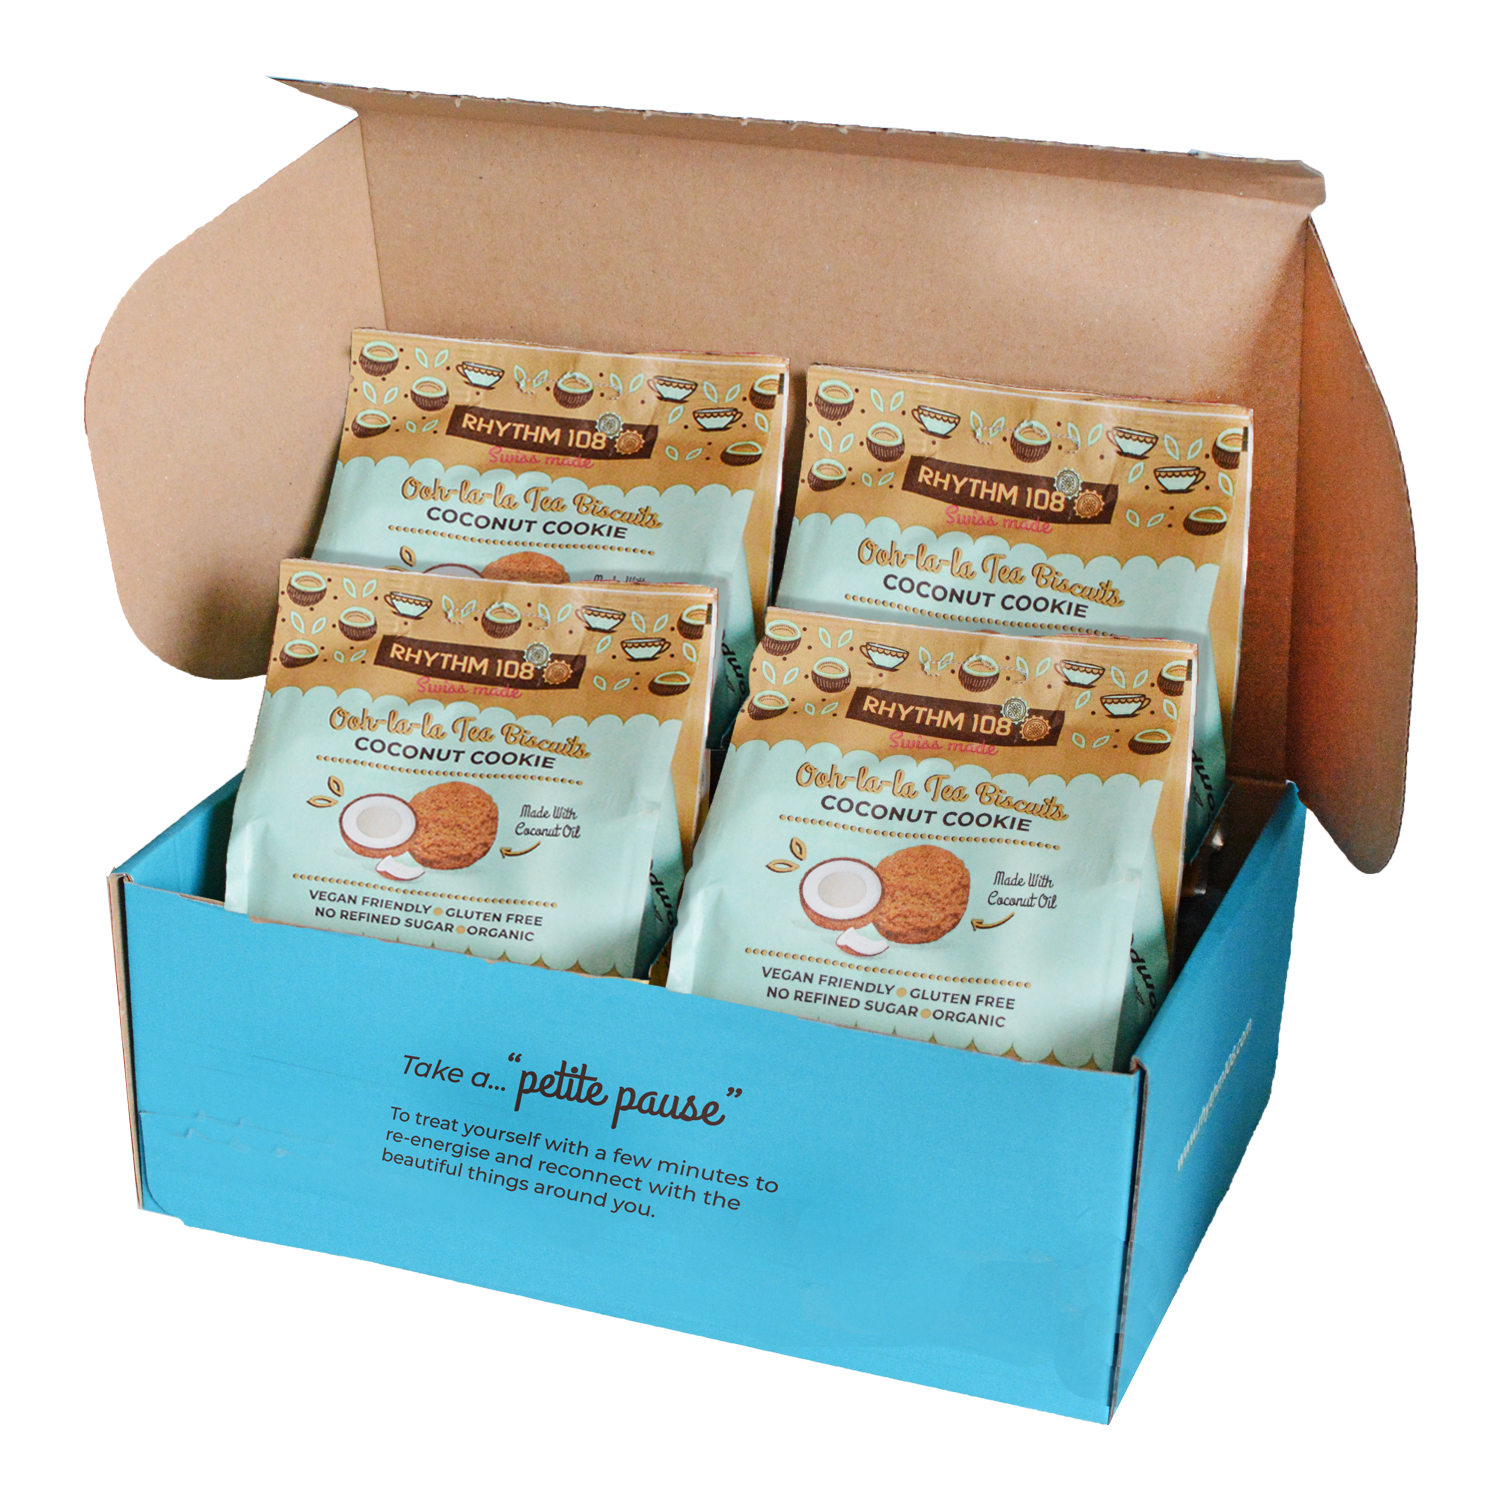 Tea Biscuits Sharebags: Coconut Cookie4 x 135g �C Rhythm 1081500 x 1500 png 3404kB